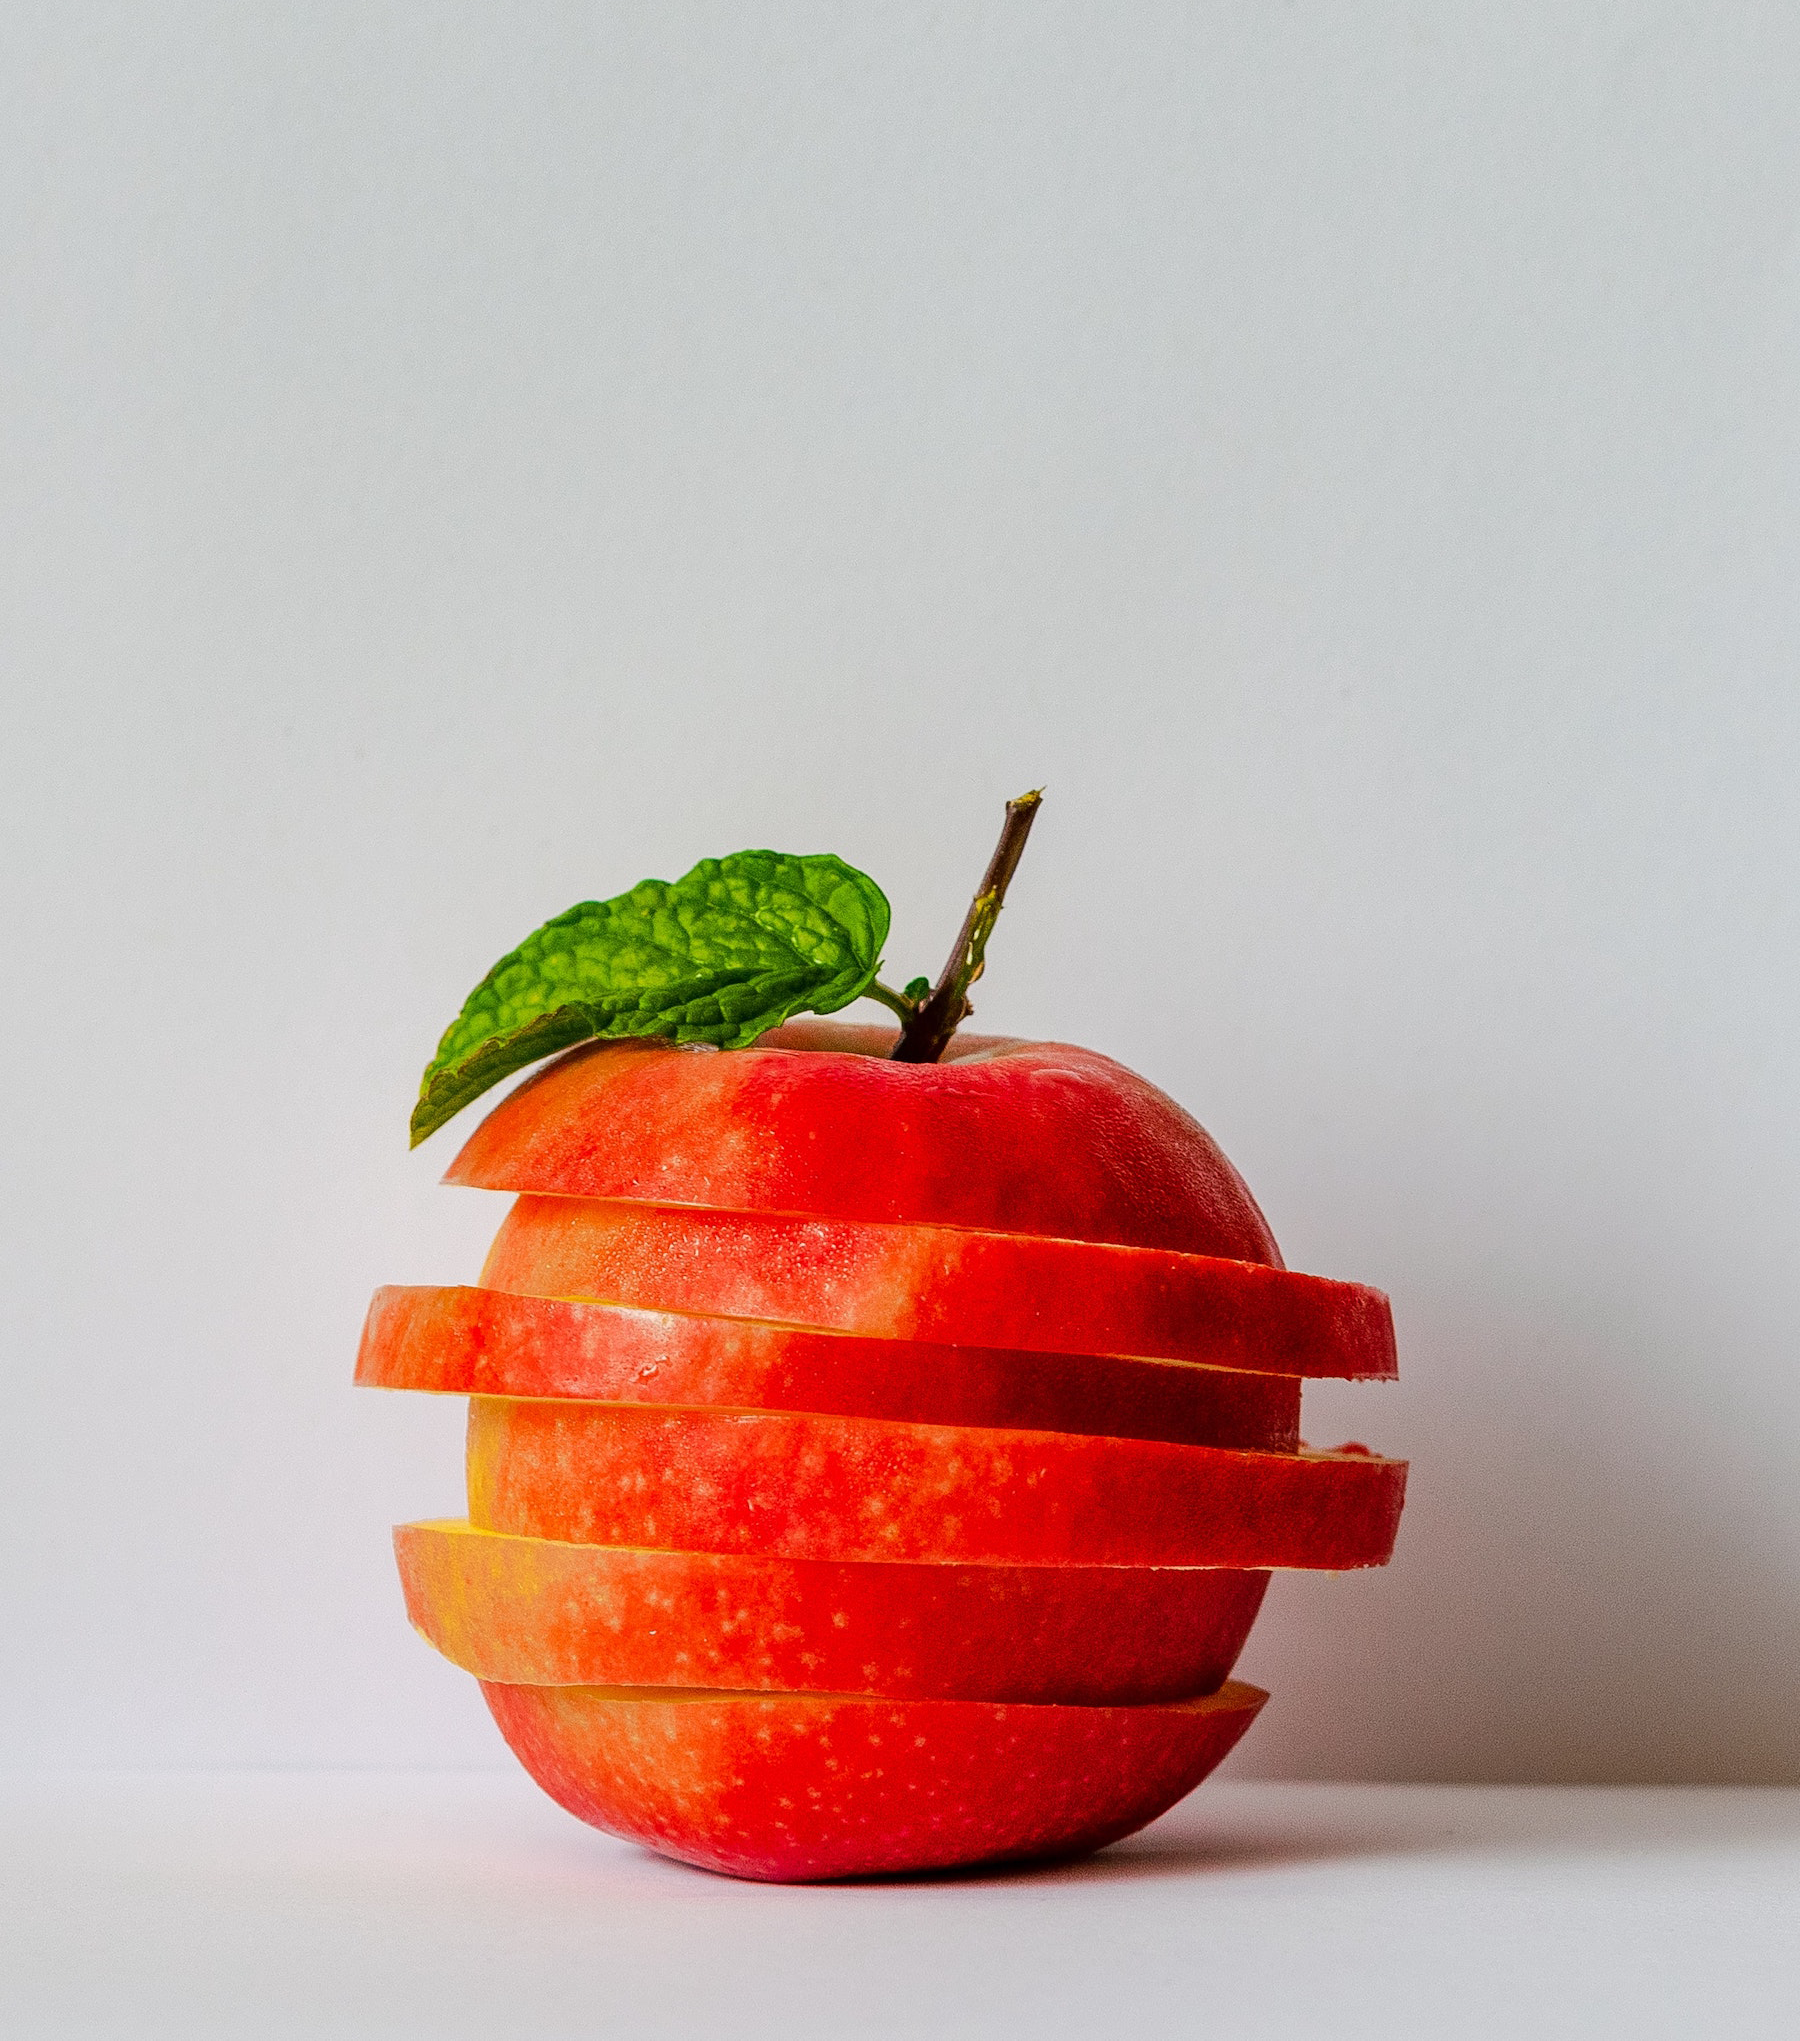 Image of a Sliced Red Apple